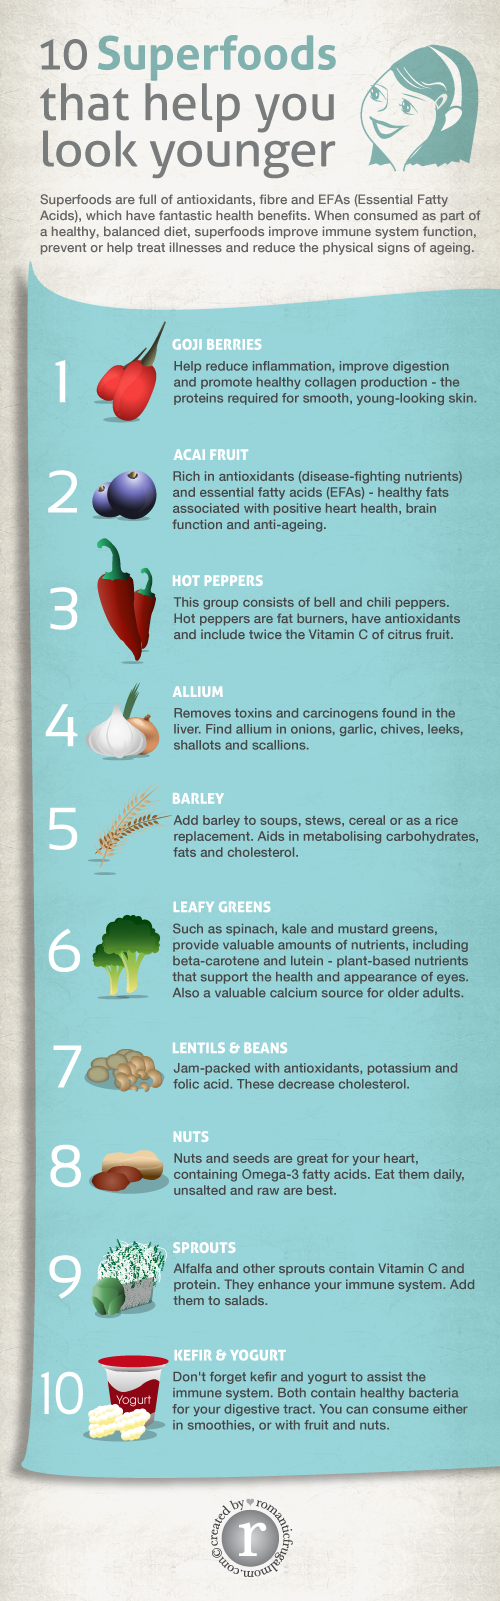 10 Superfoods for a Healthy Life